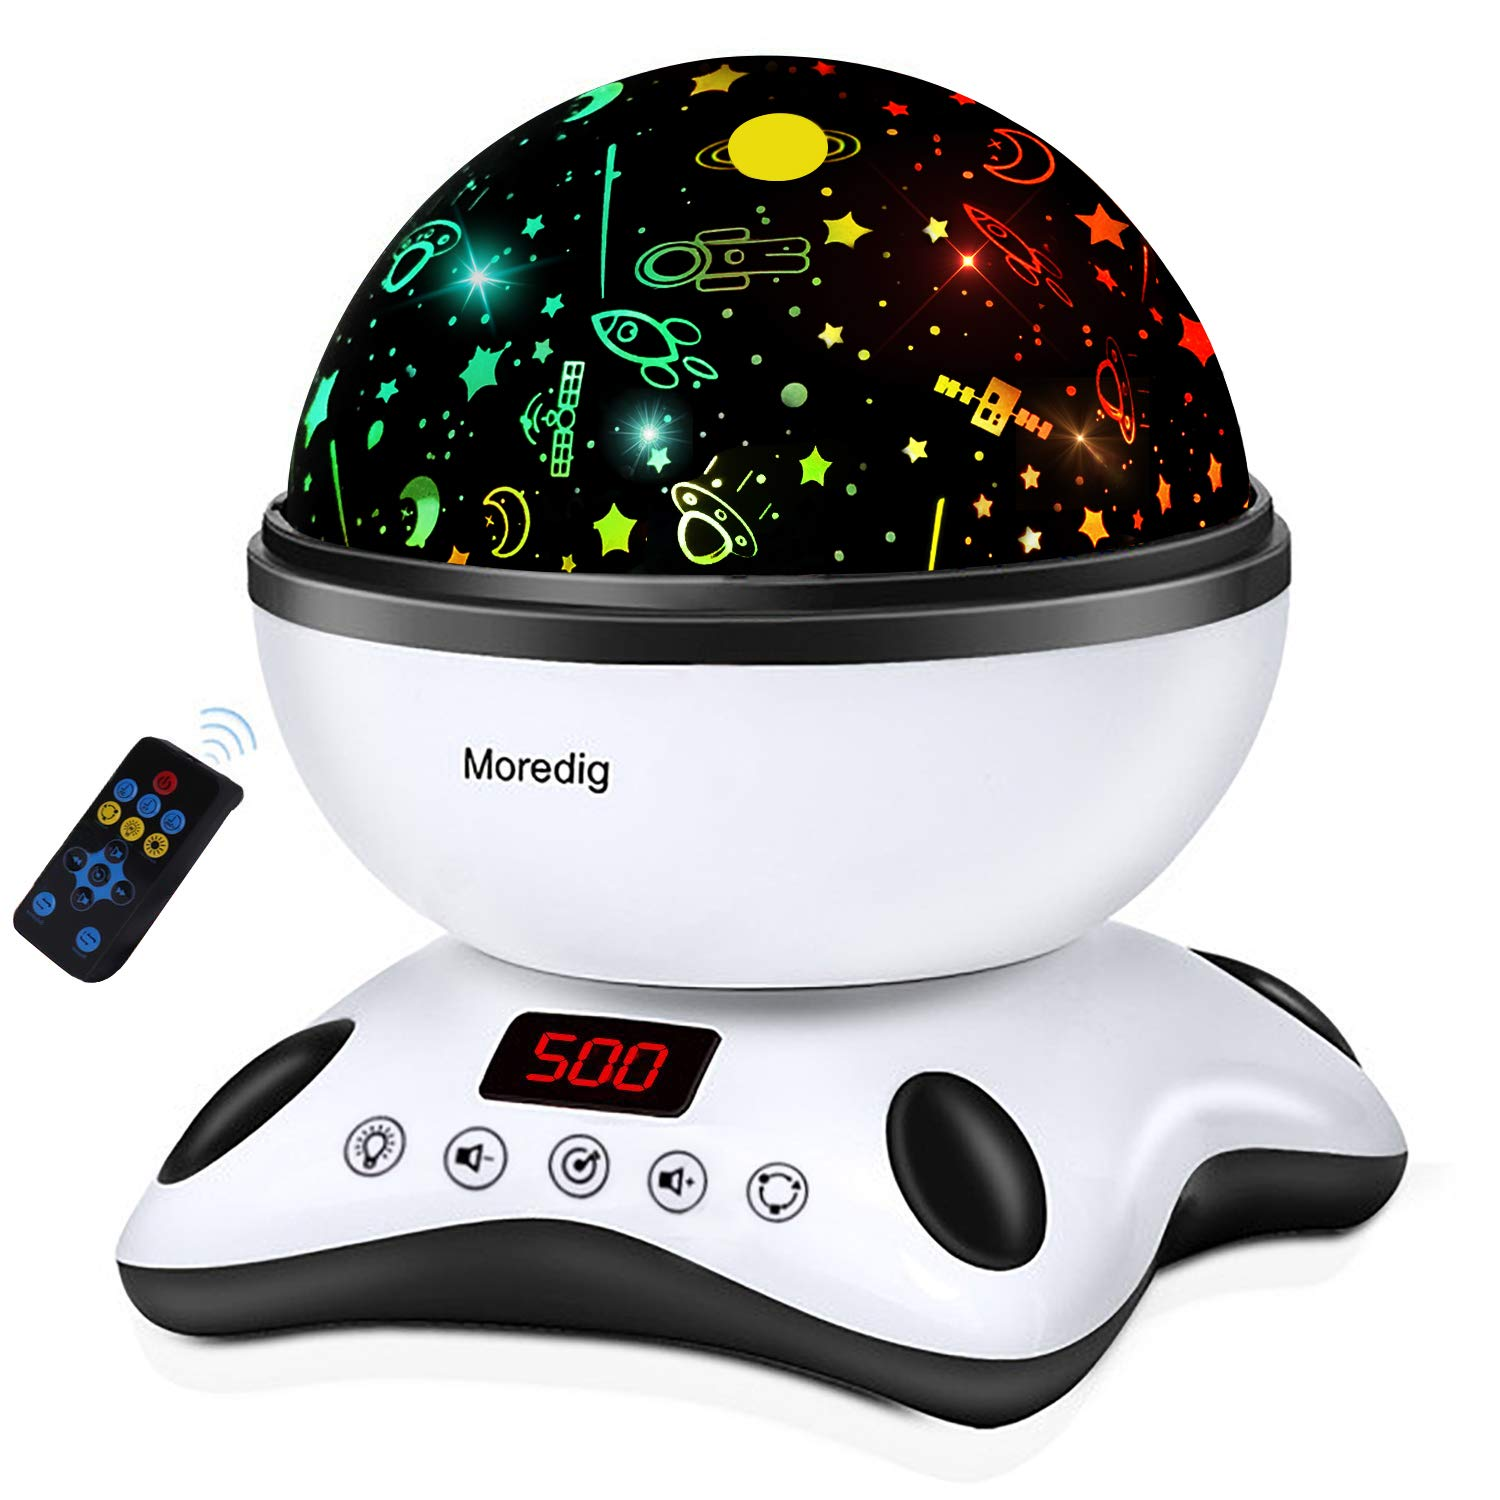 Moredig Night Light Projector Remote Control and Timer Design Projection lamp, Built-in 12 Light Songs 360 Degree Rotating 8 Colorful Lights for Children Kids Birthday, Parties - Black White by Moredig